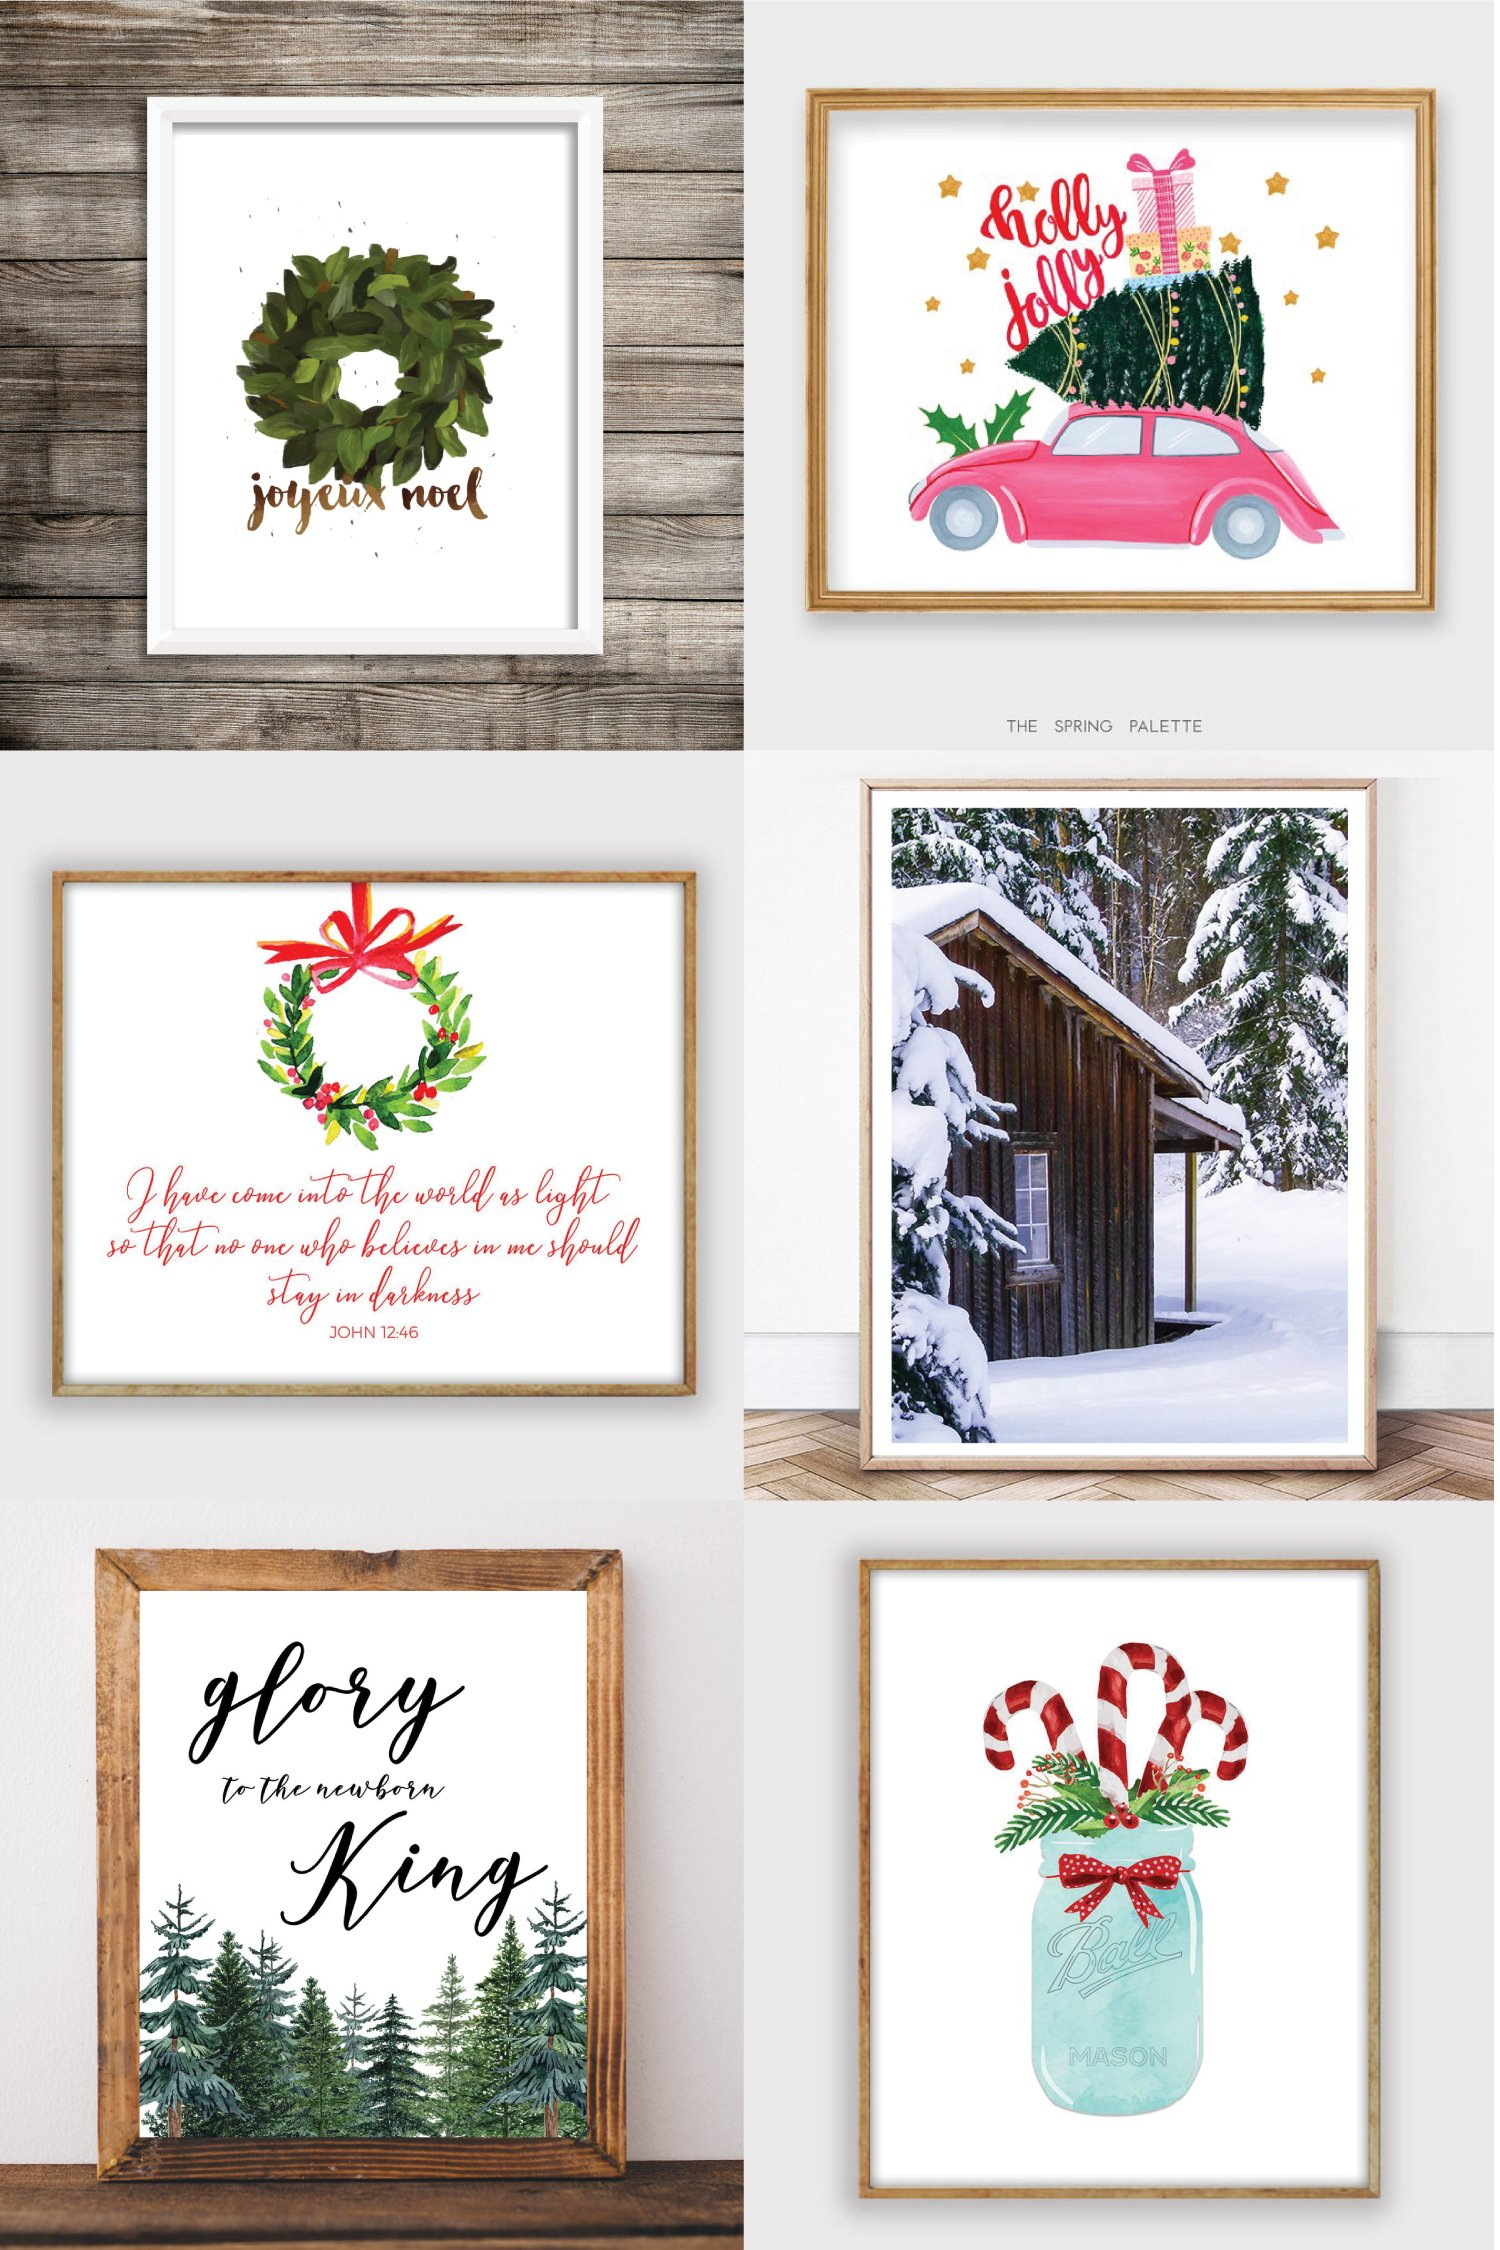 Etsy is the perfect place to find all styles of Christmas printables! I've rounded up some of my favorites—all under $10. Perfect for home decor, classrooms, invitations, and more.